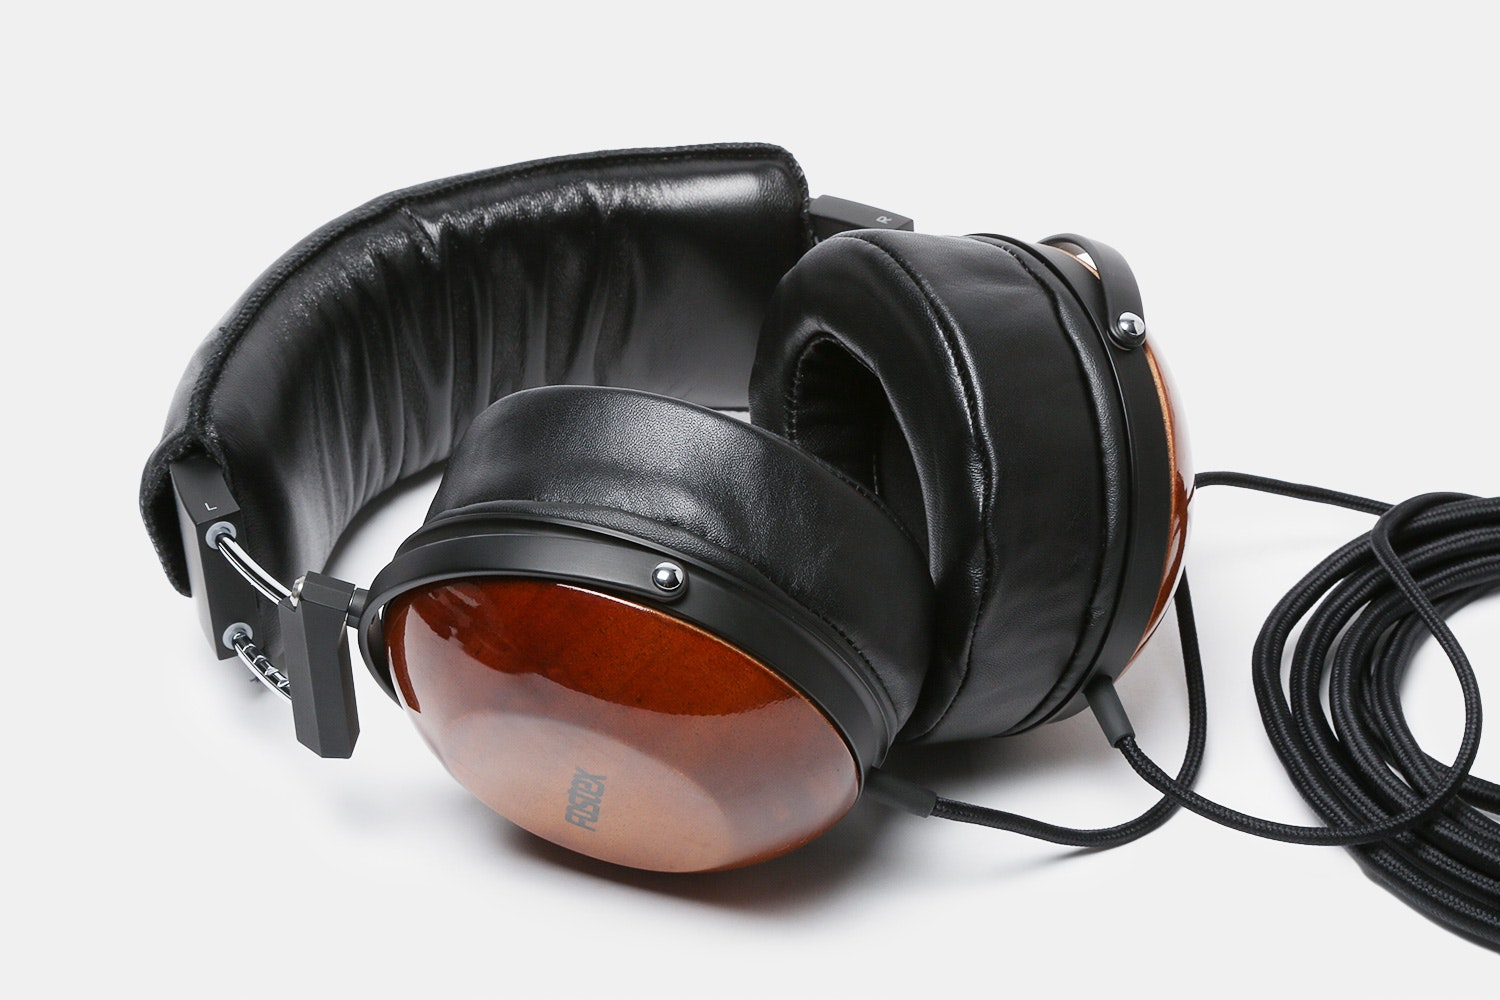 361A5876_20170629115824?w=600&h=399 zmf ear pads for fostex, audeze & more community discussions Headphone with Mic Wiring Diagram at suagrazia.org